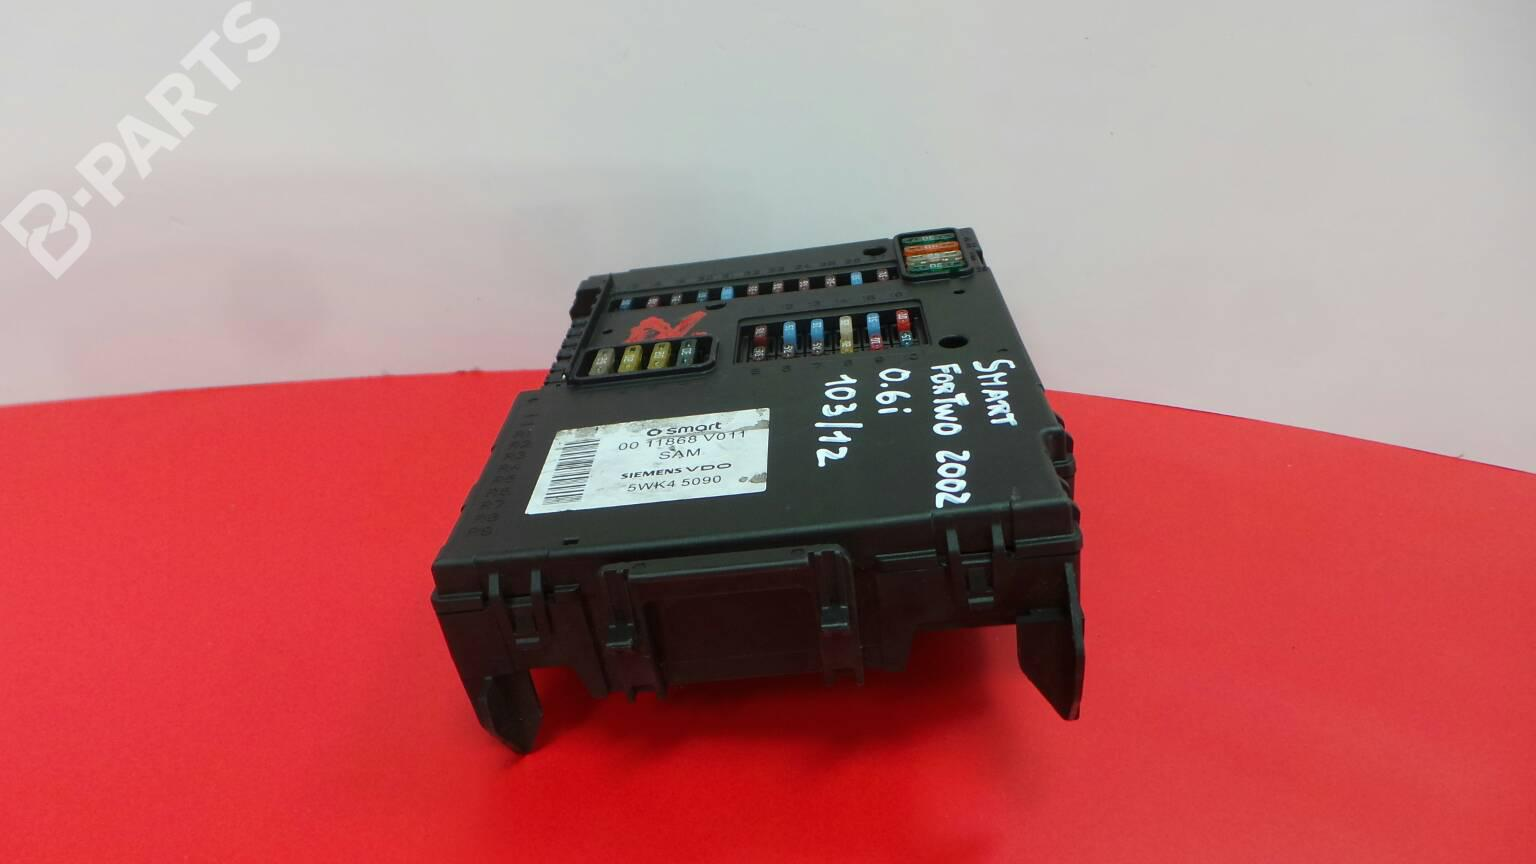 hight resolution of fuse box 0011868v011 5wk45090 smart city coupe 450 0 6 s1cla1